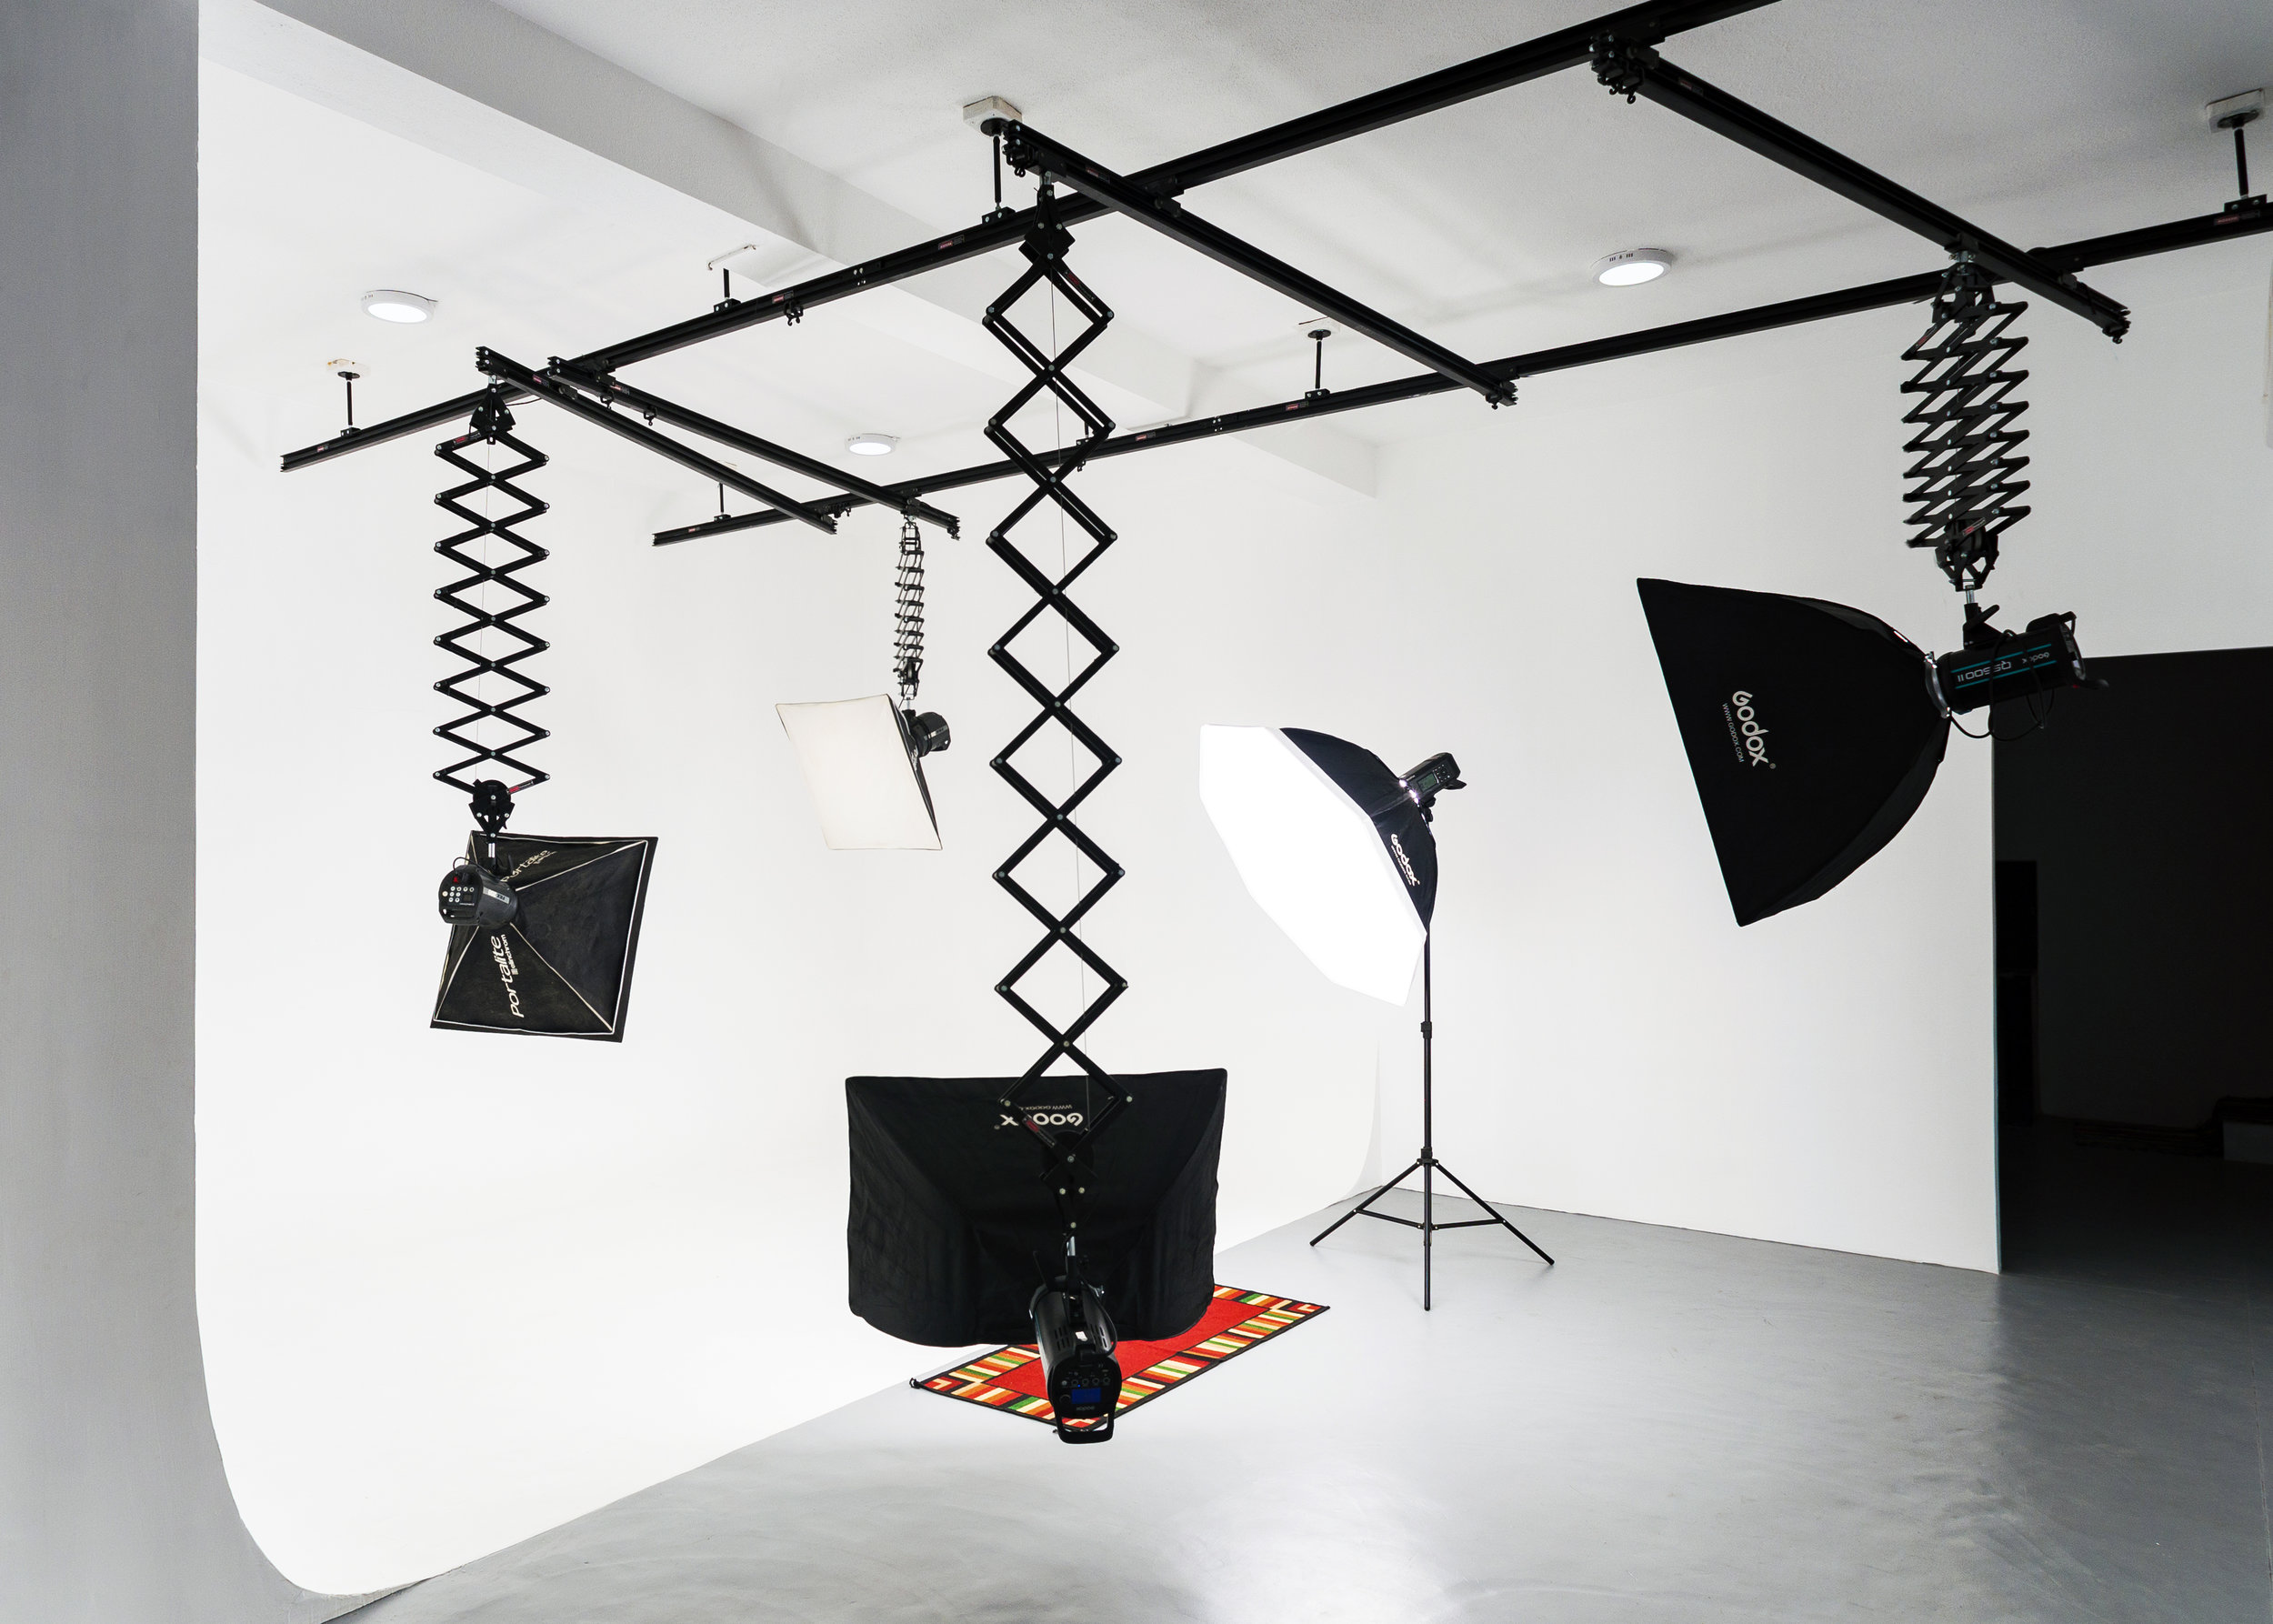 High-end studio equipments with 'cyclorama' set-up and ceiling railings -